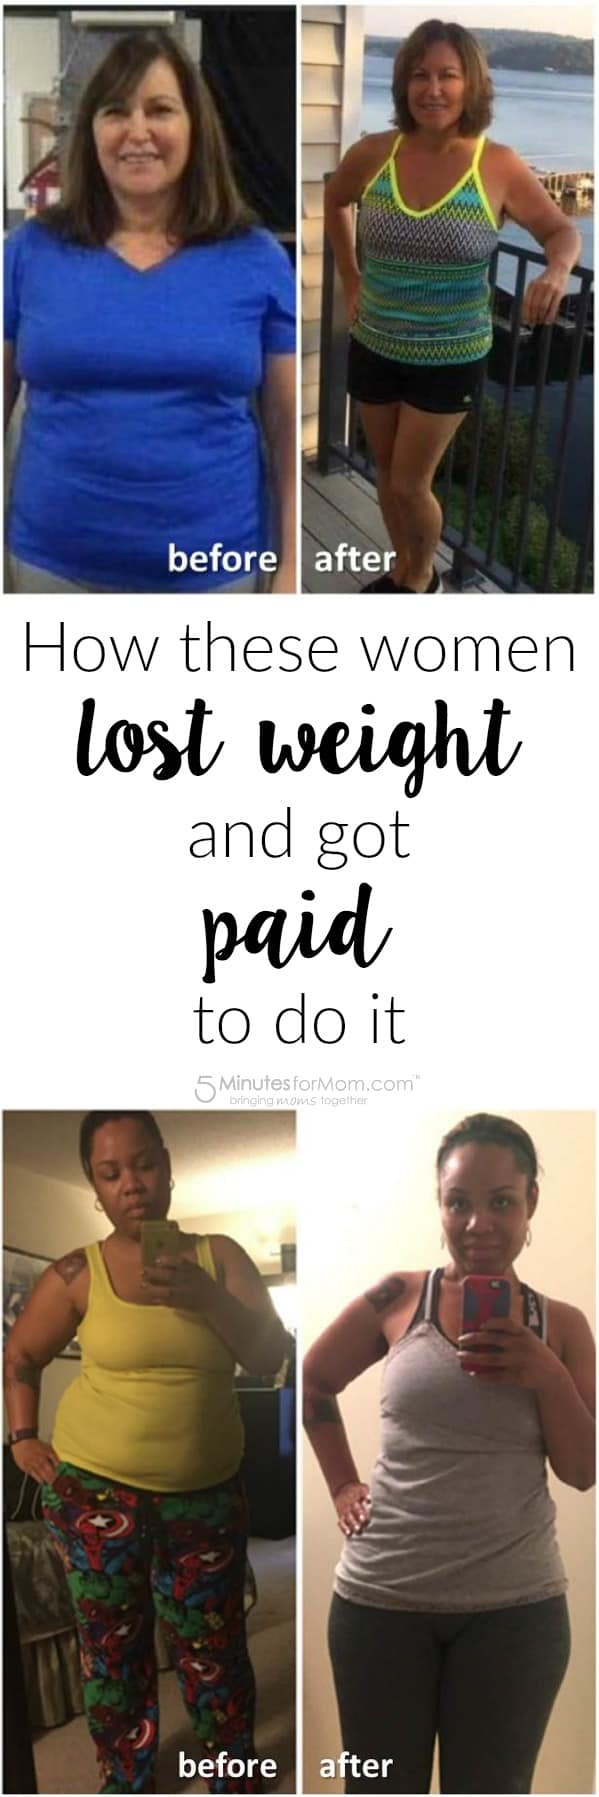 How these women lost weight and got paid to do it